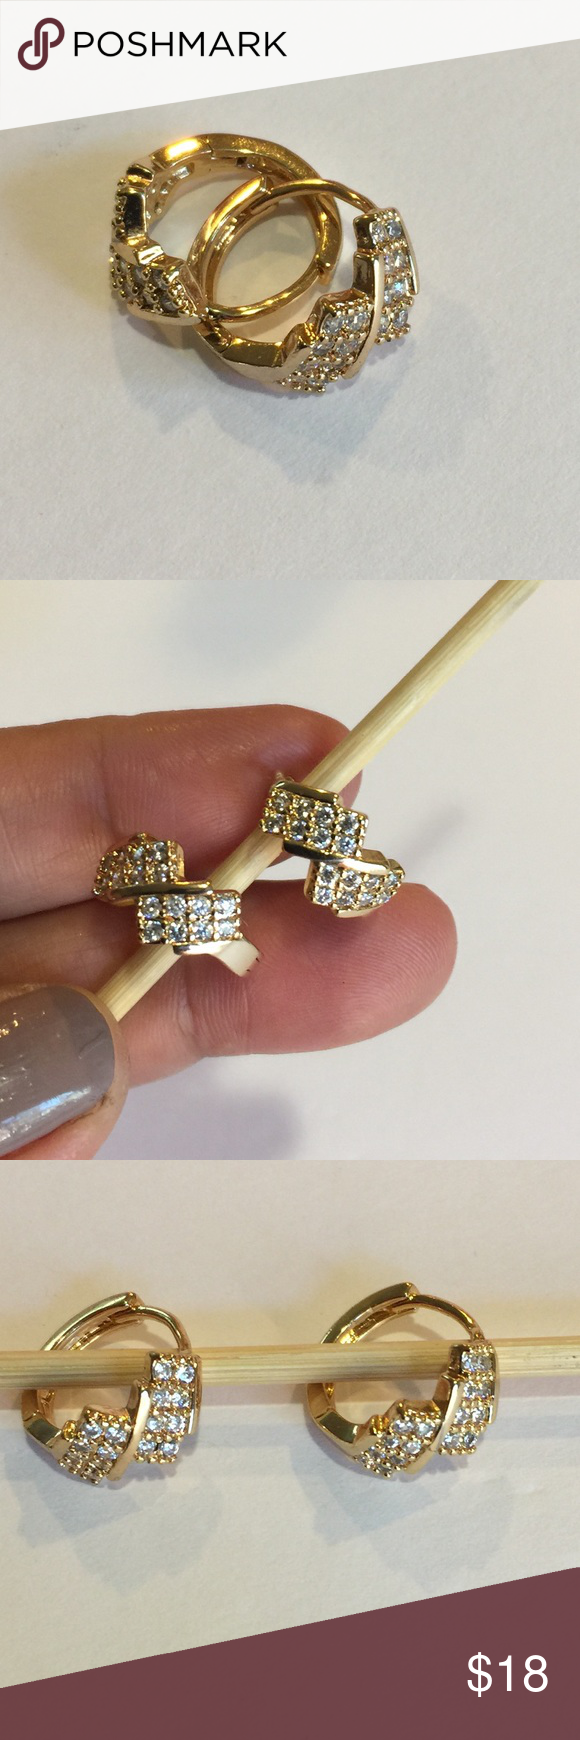 14k Bangkok Gold Dipped Earings Brand new  Price is firm